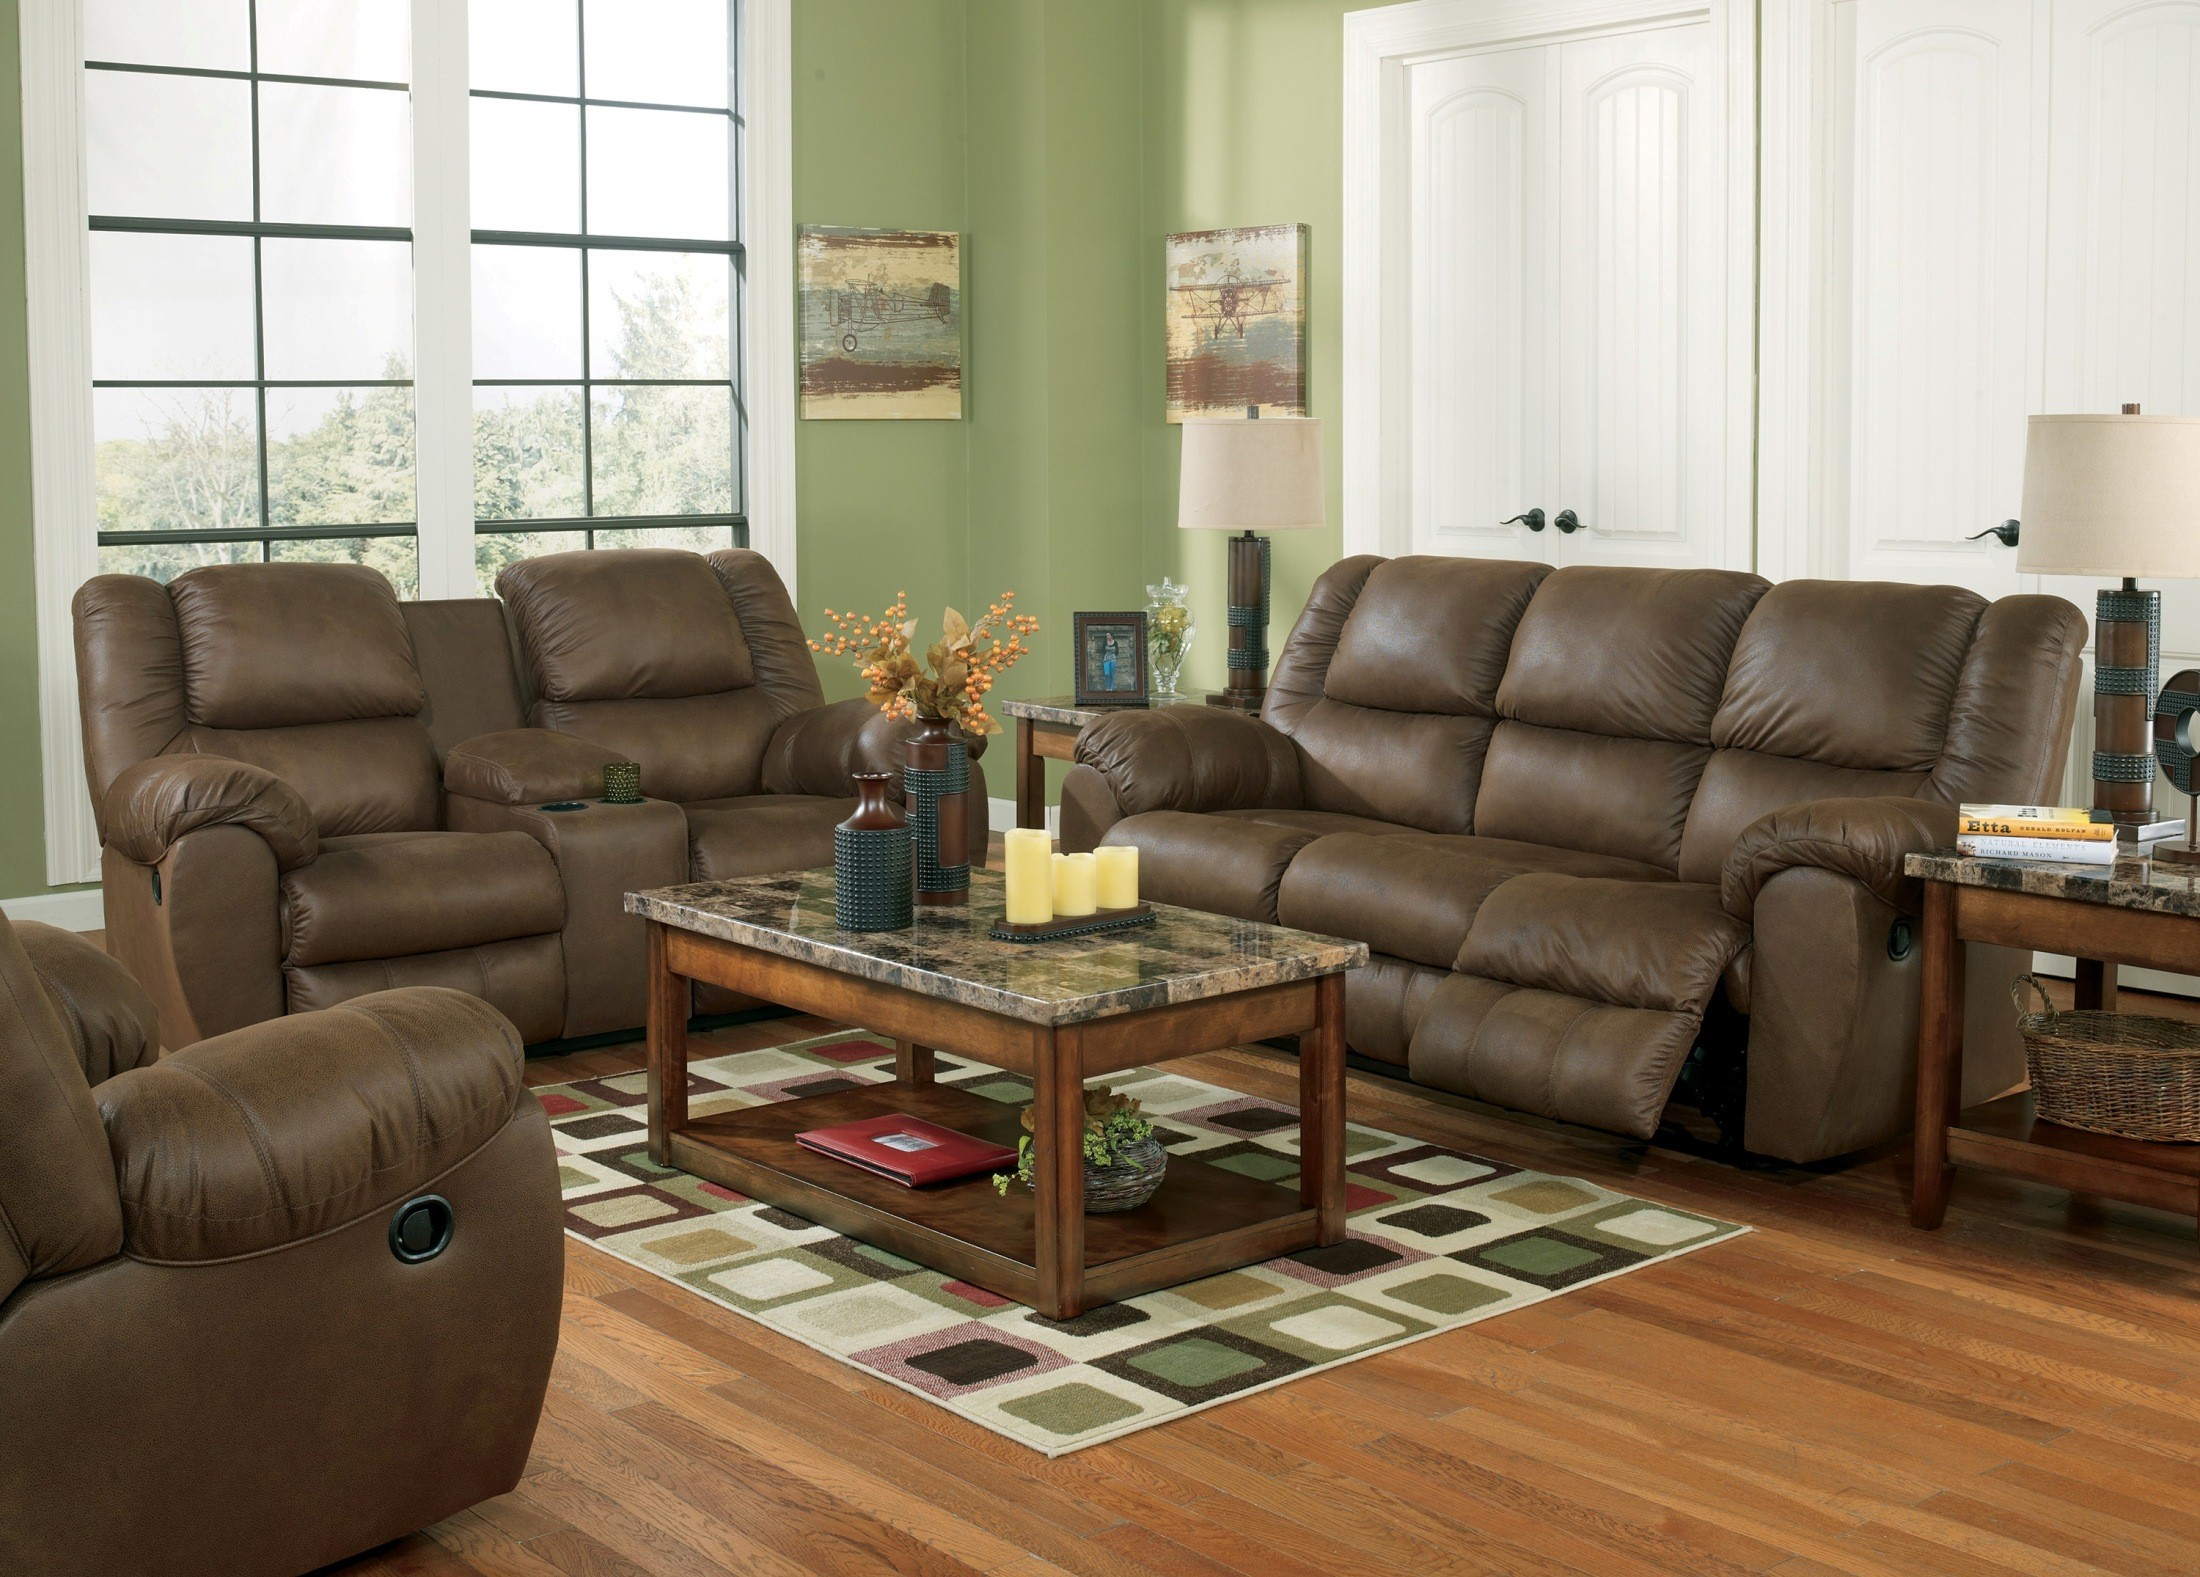 Quarterback Canyon Reclining Loveseat With Console From